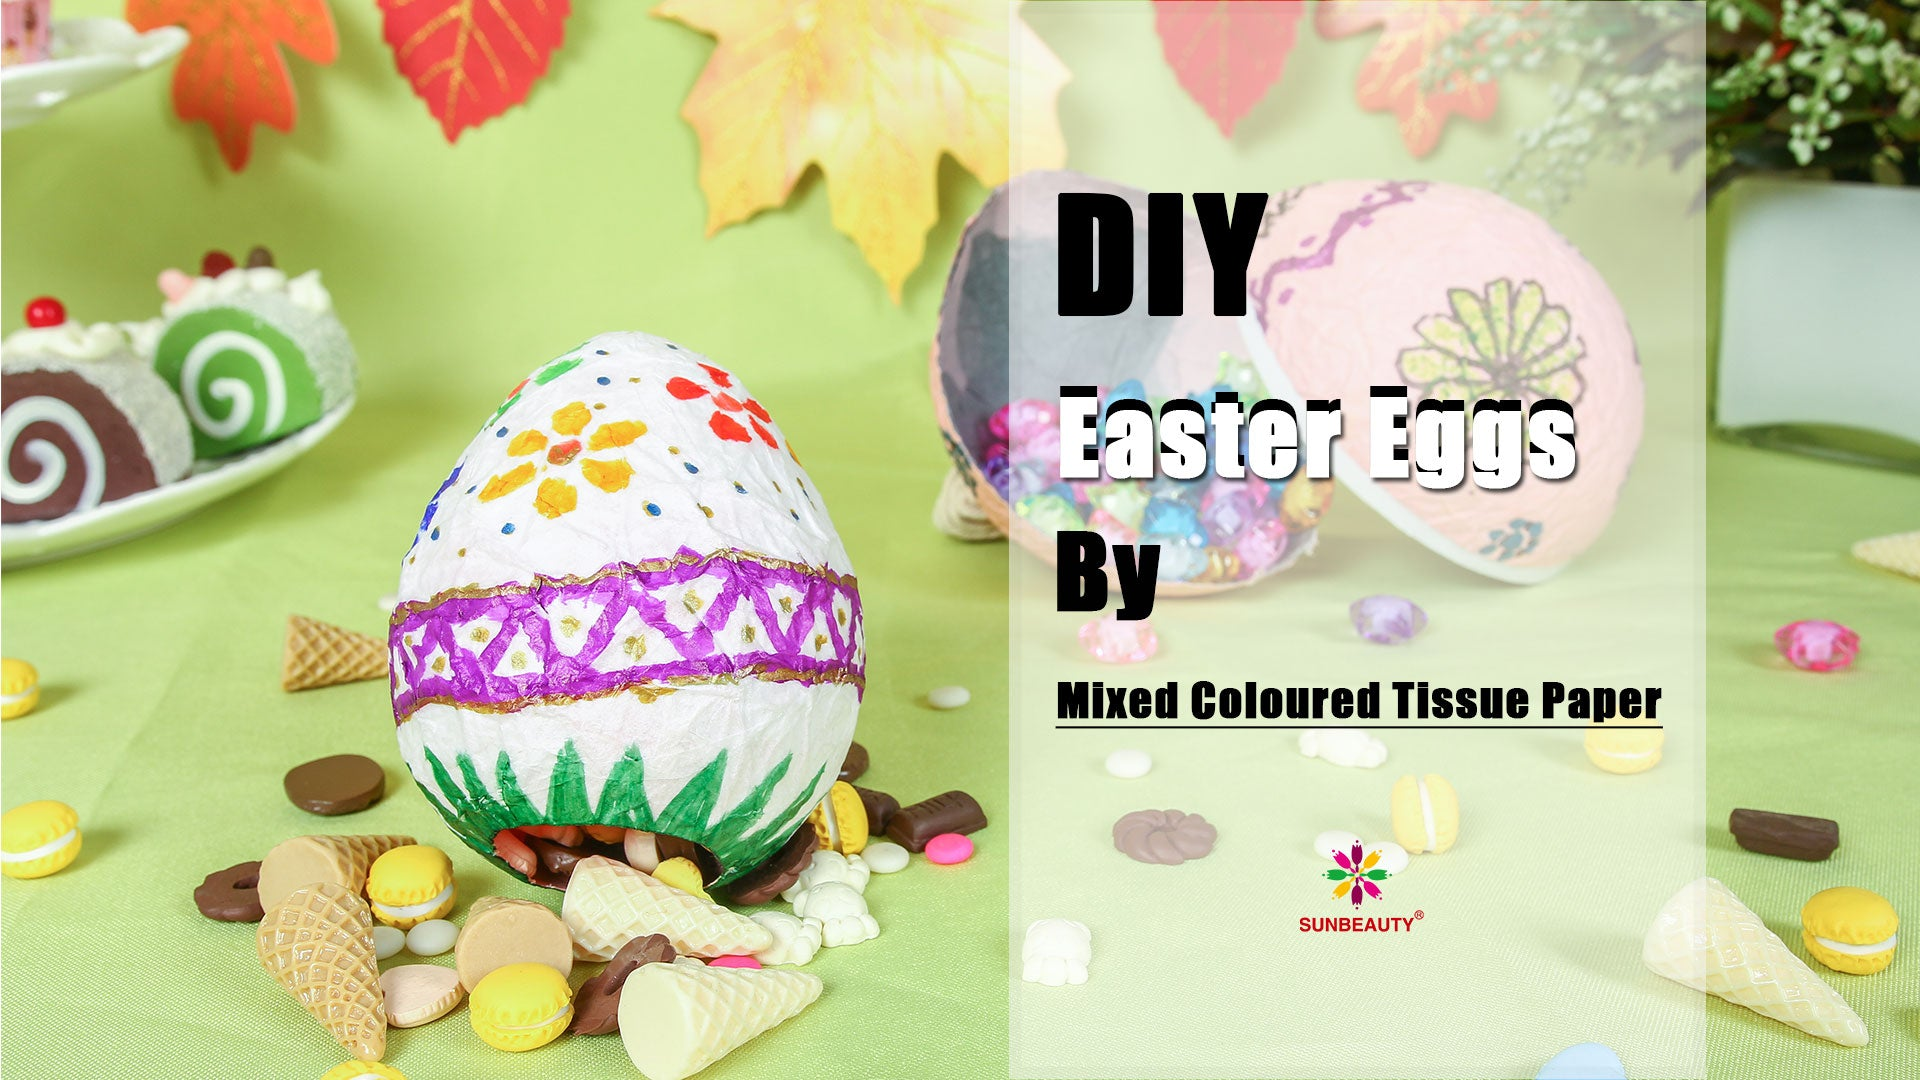 How To DIY Easter Egg with Mixed Coloured Tissue Paper